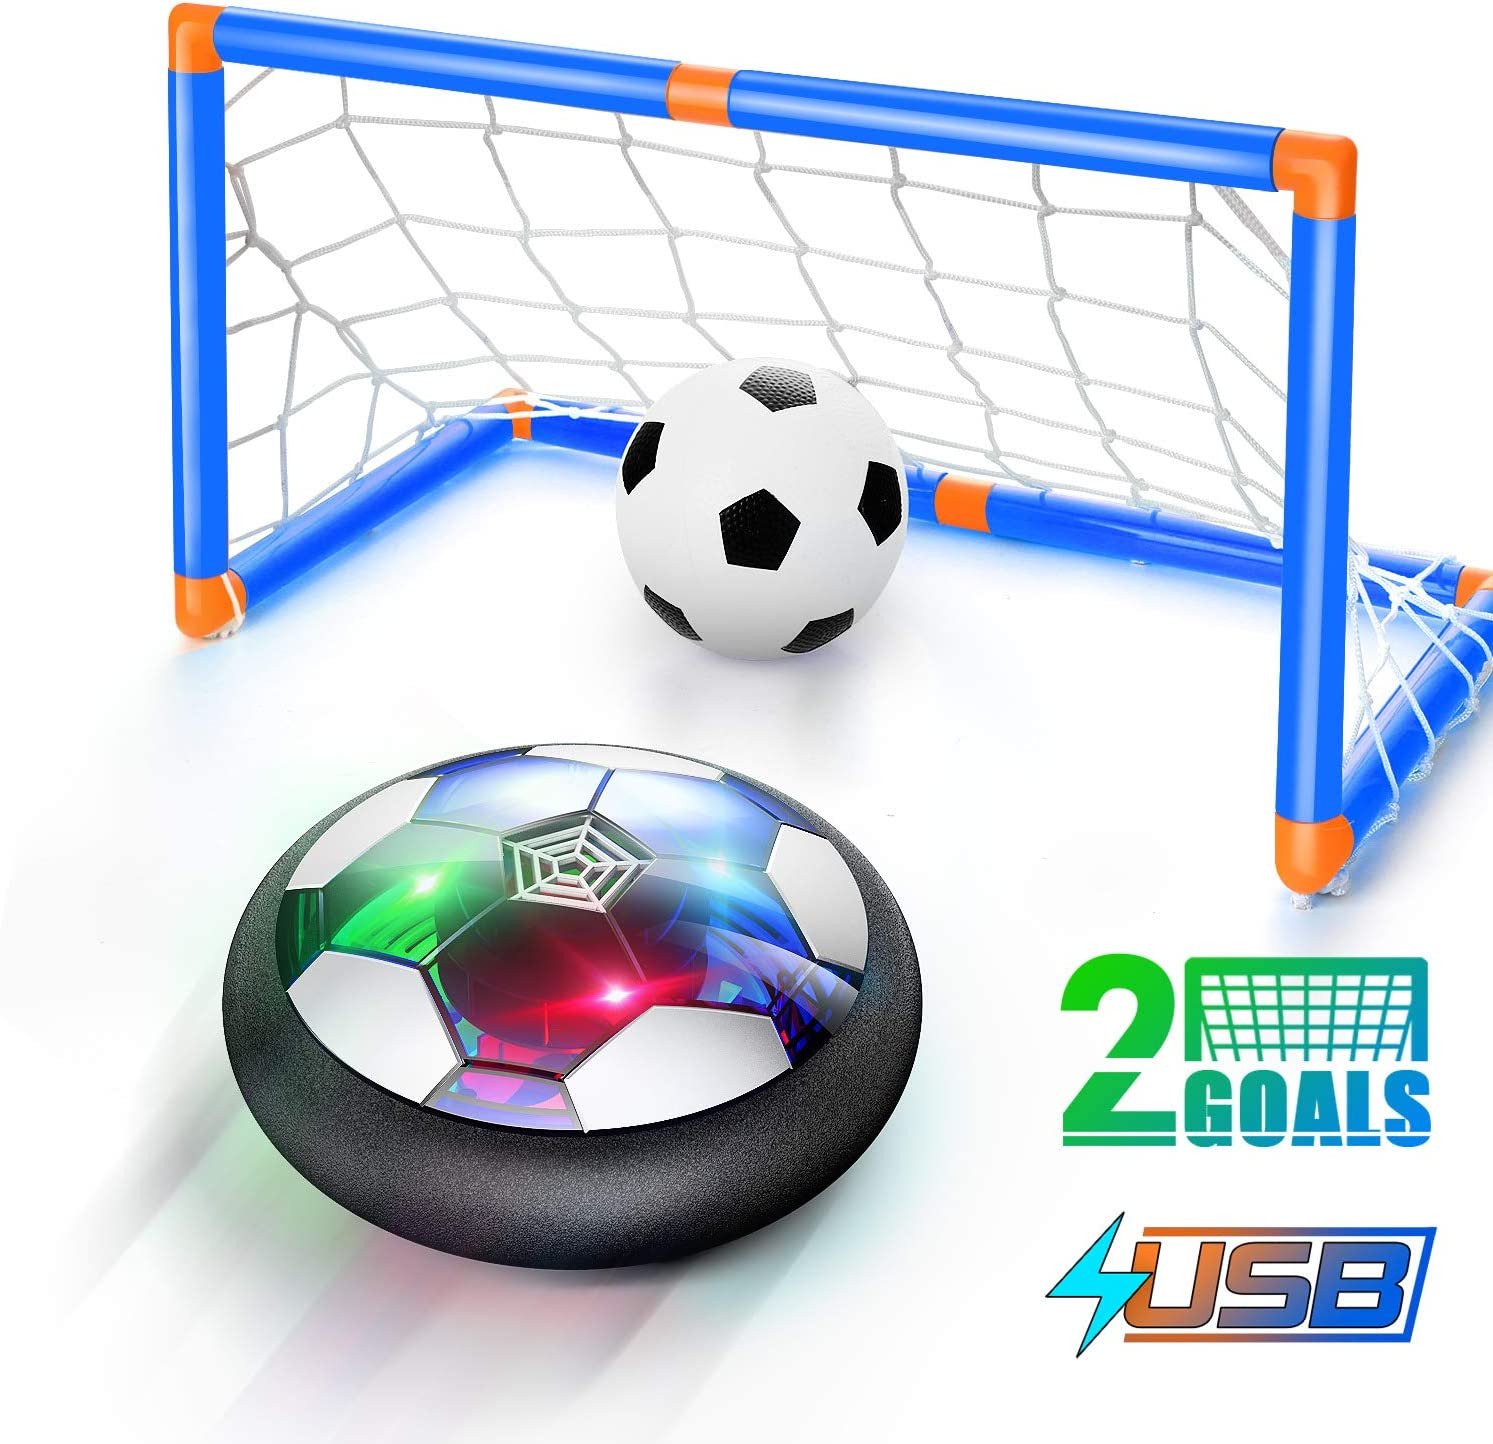 WisToyz Hover Soccer Ball Set 2020 Version, Rechargeable Air Soccer No Battery Needed - 2 Upgraded Goals, LED Light, Extra Soccer Ball, Hover Soccer to Hone Soccer Skills Indoor, Gift for Toddles Kids